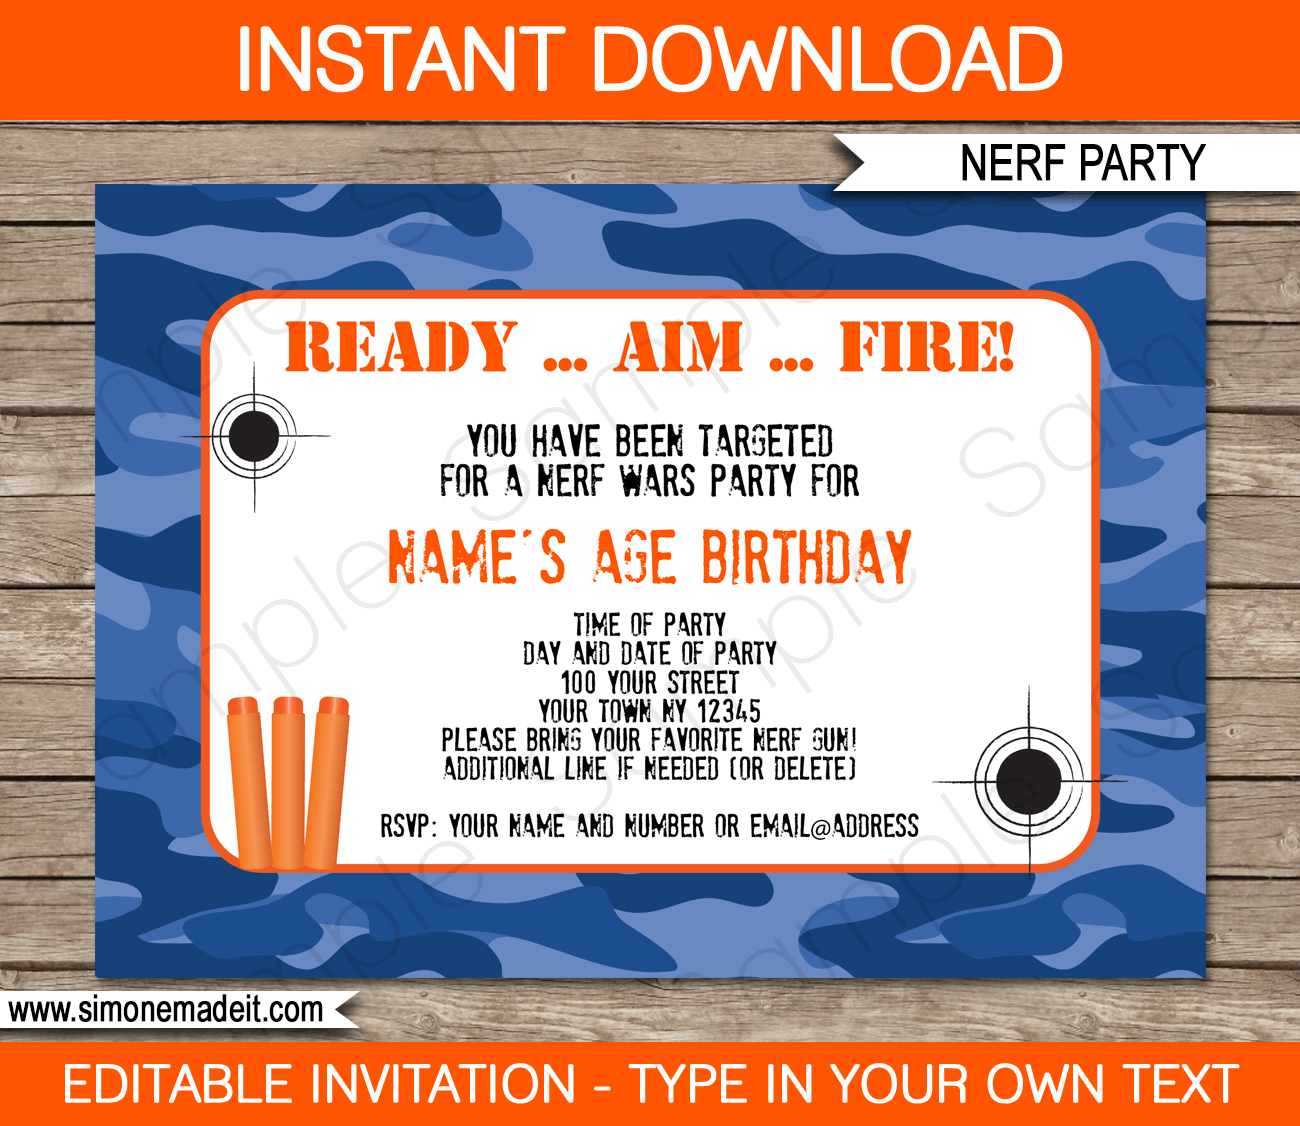 Nerf birthday party invitations editable template blue camo nerf birthday party invitations blue camo editable printable diy template instant download stopboris Gallery